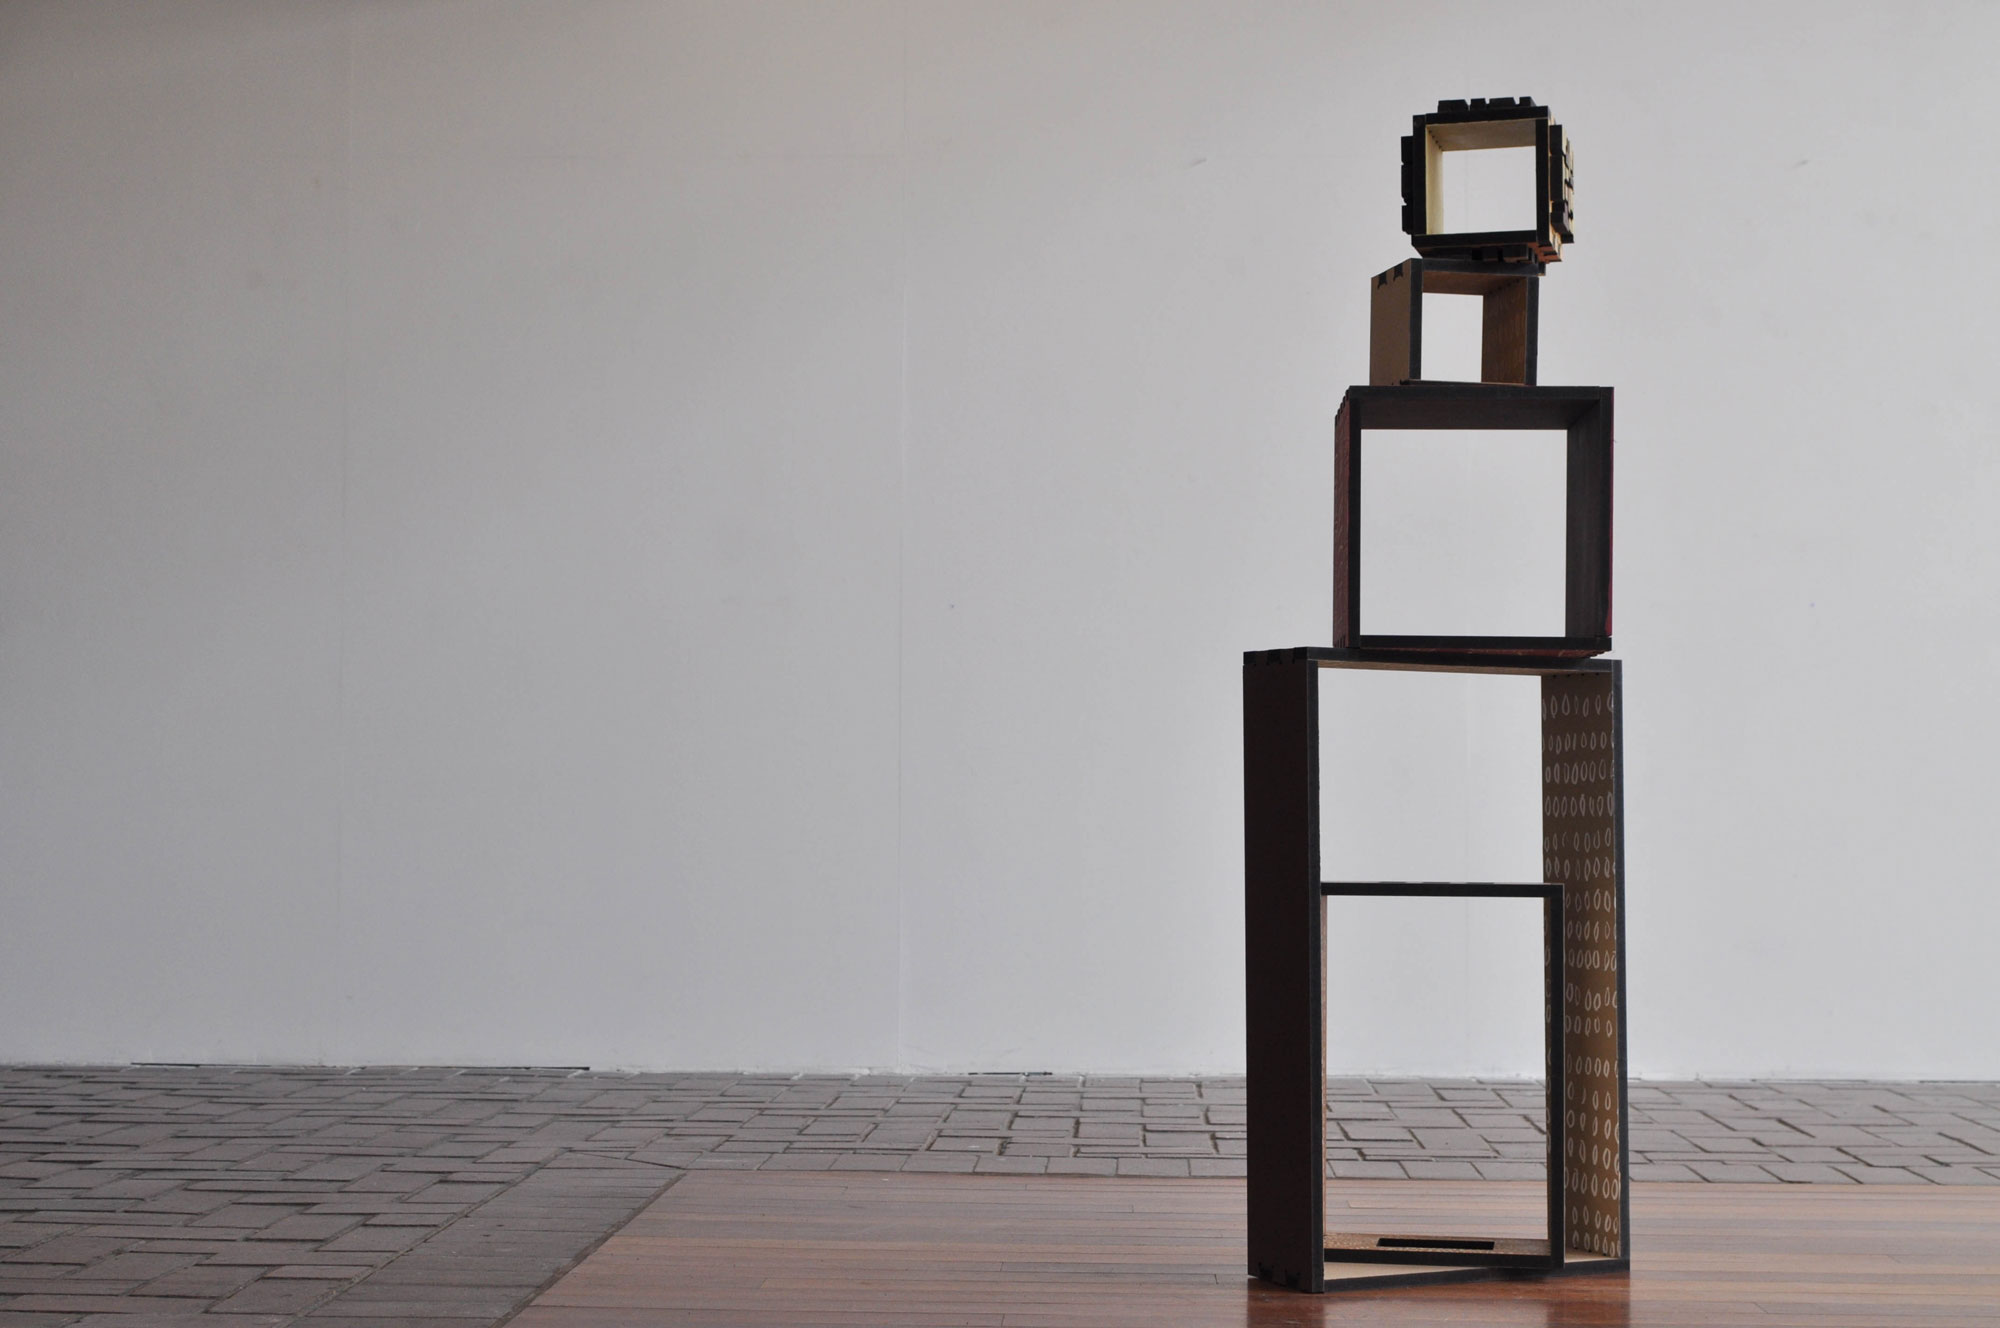 Block stack studies  (still of variation), 2013, Permaset on MDF, dimensions variable